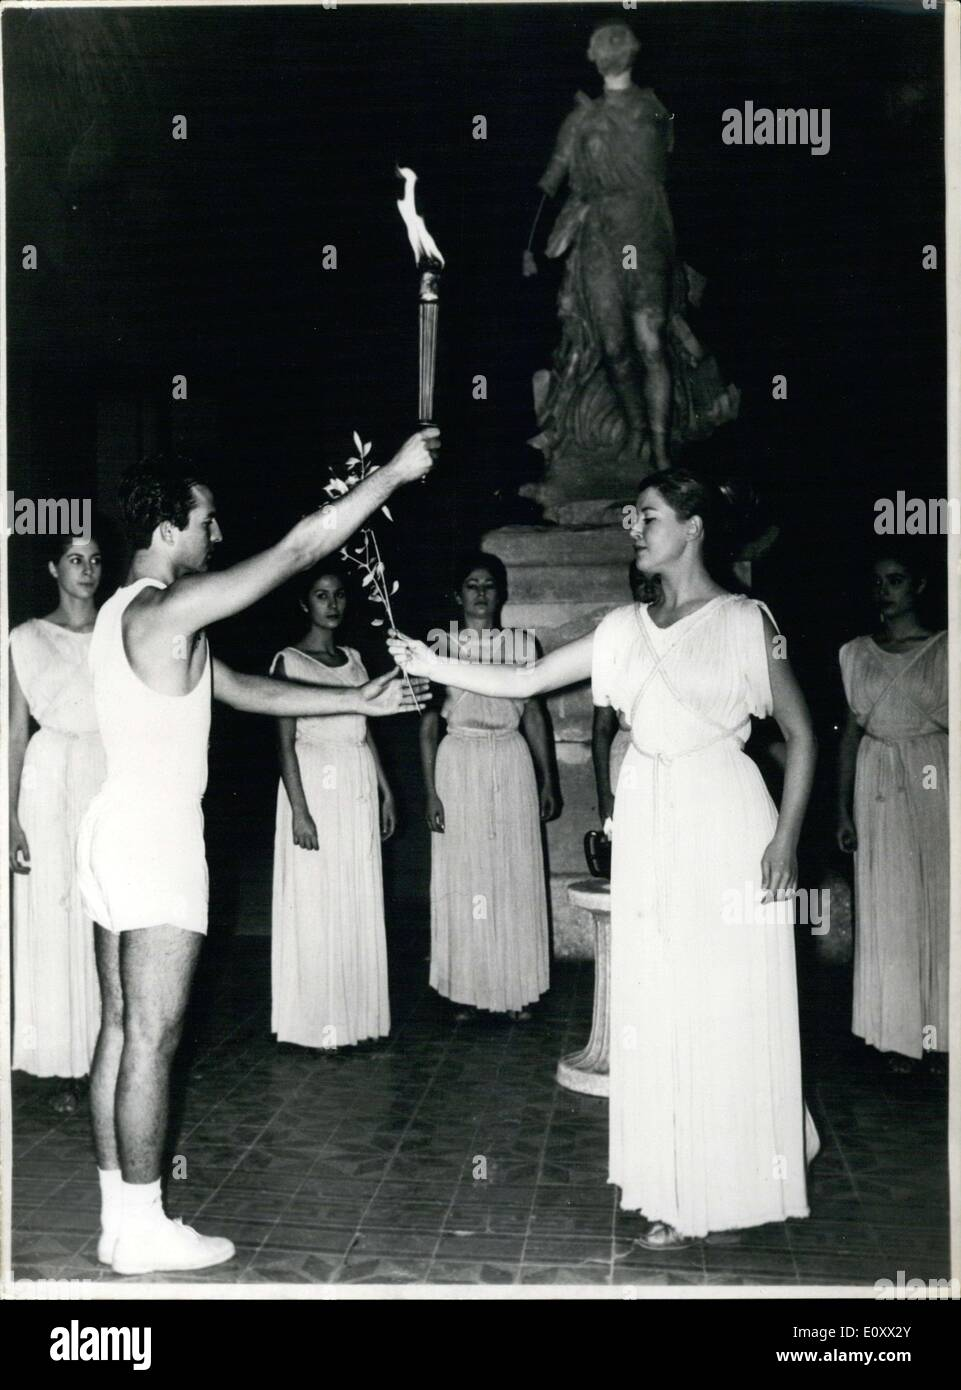 Dec. 20, 1967 - Priestess Taking the Olive Branch of the Olympic Games - Stock Image